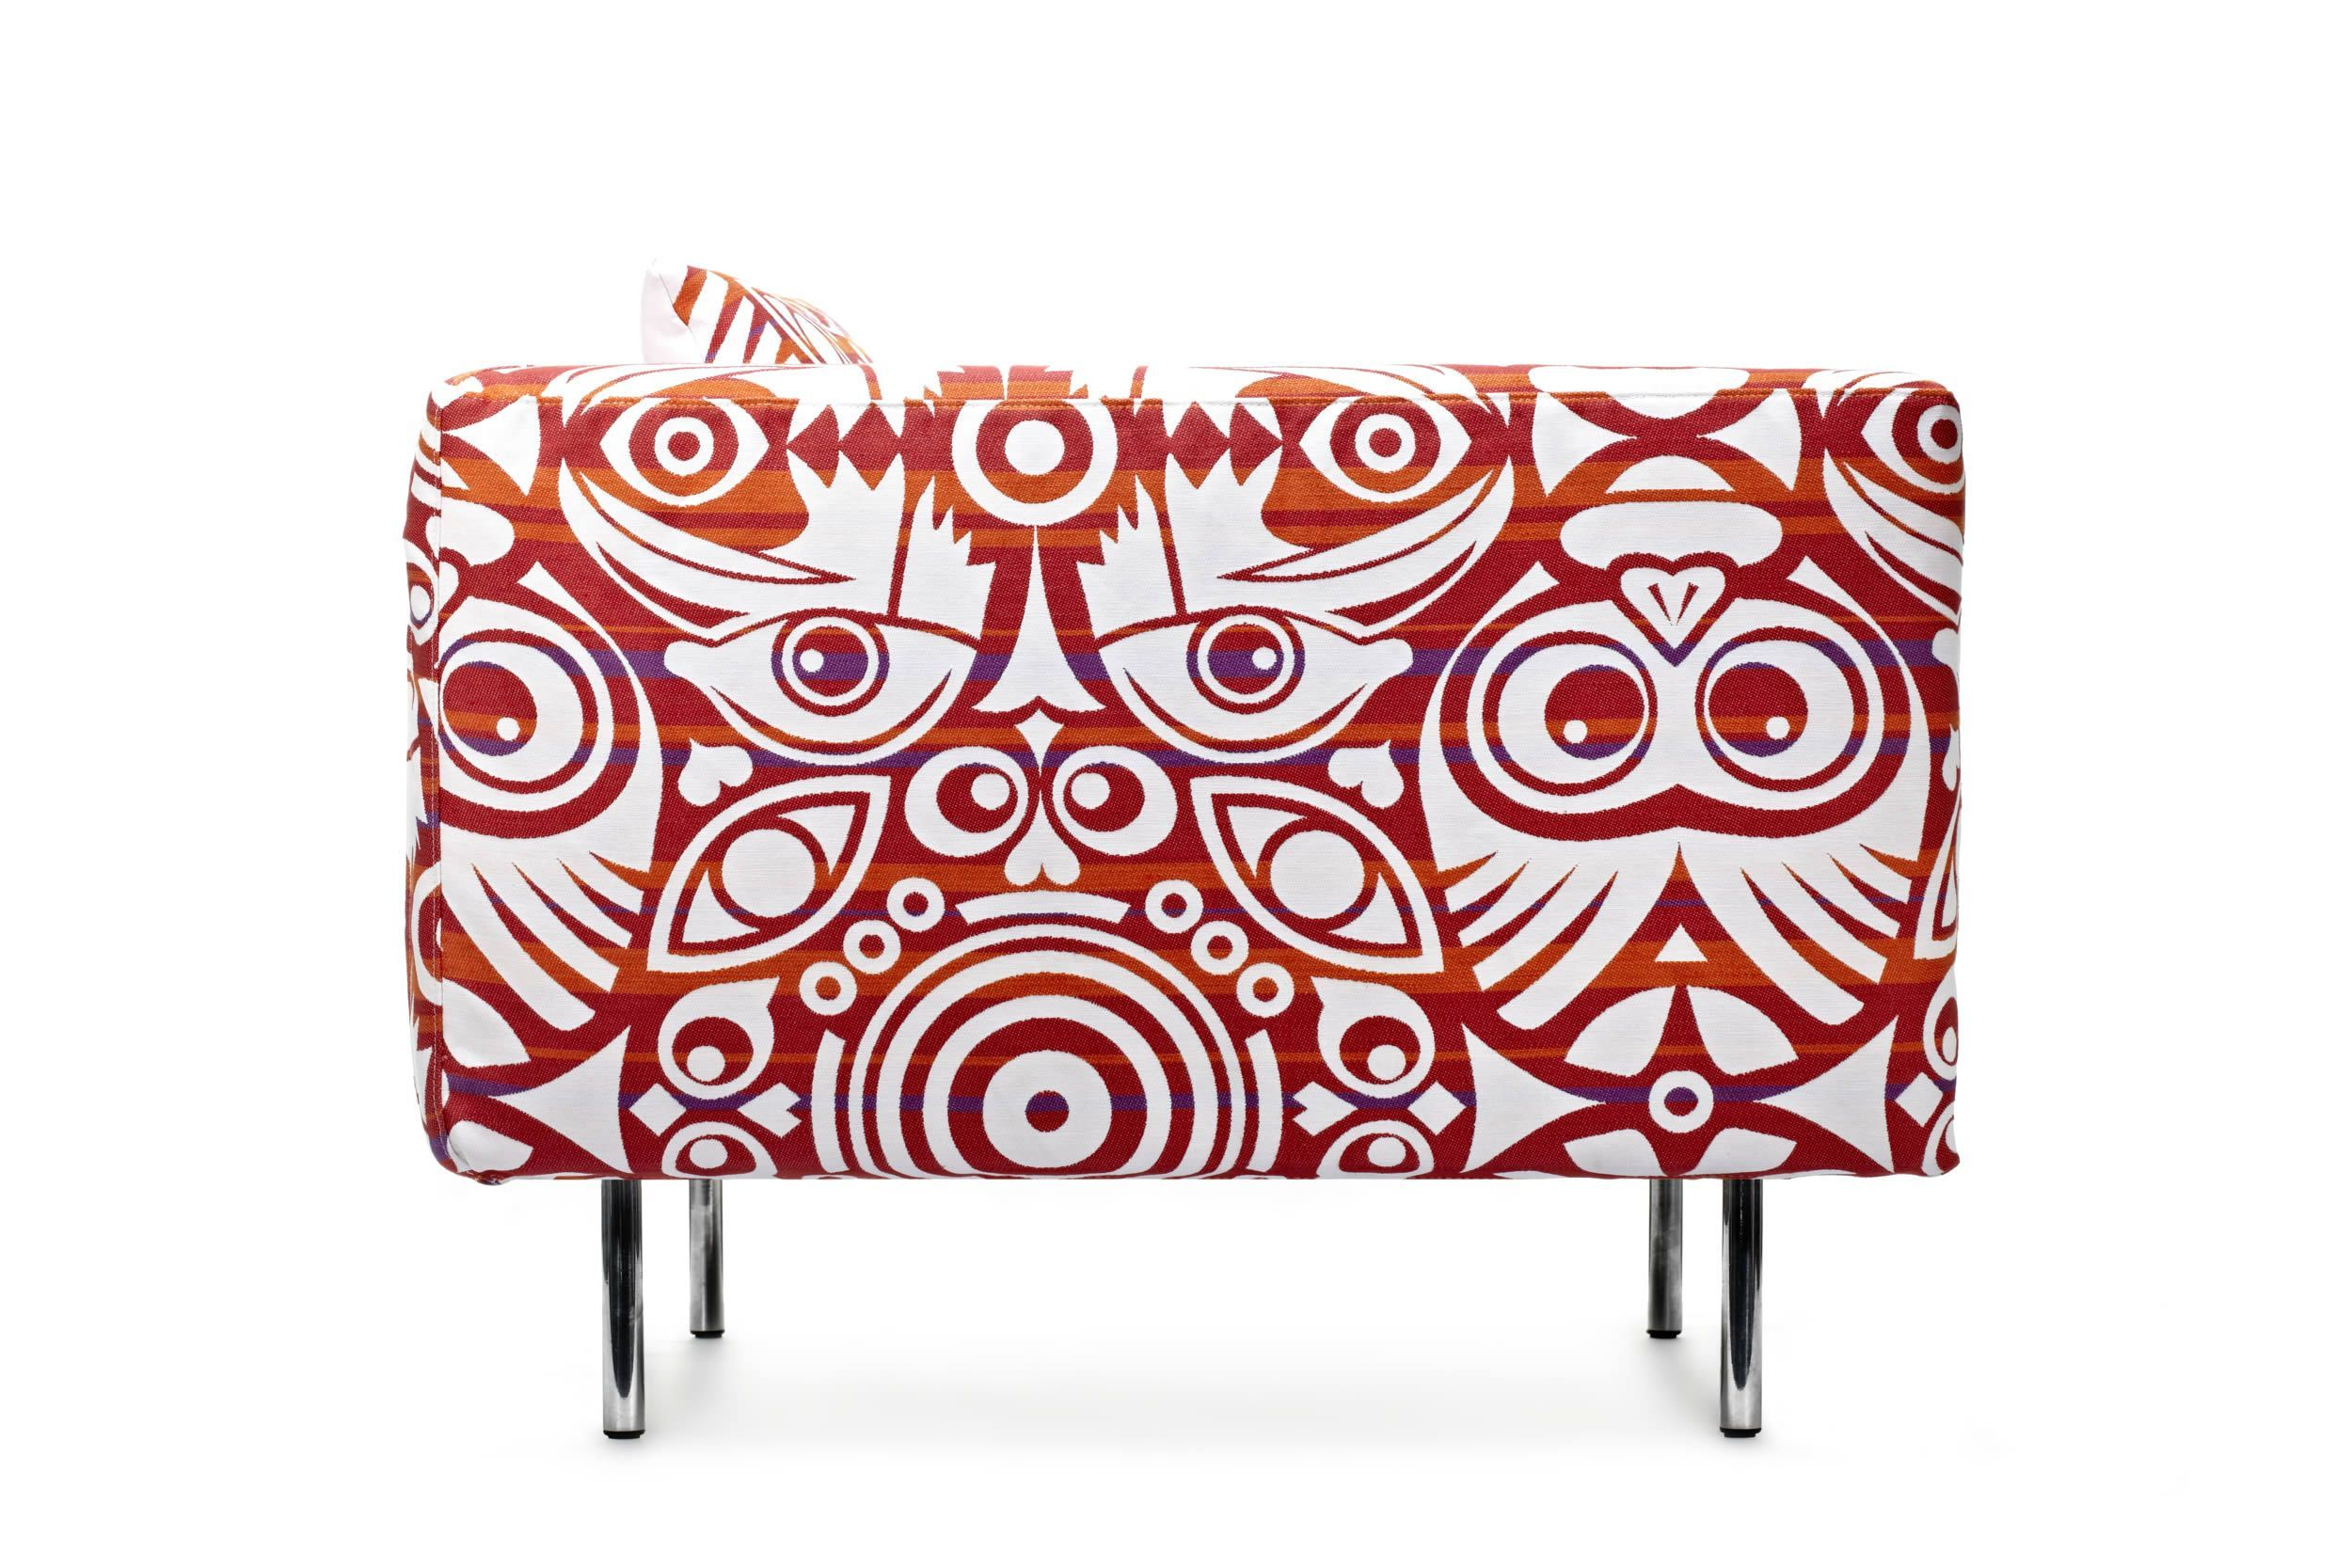 Sofa Table Boutique sofa MOOOI